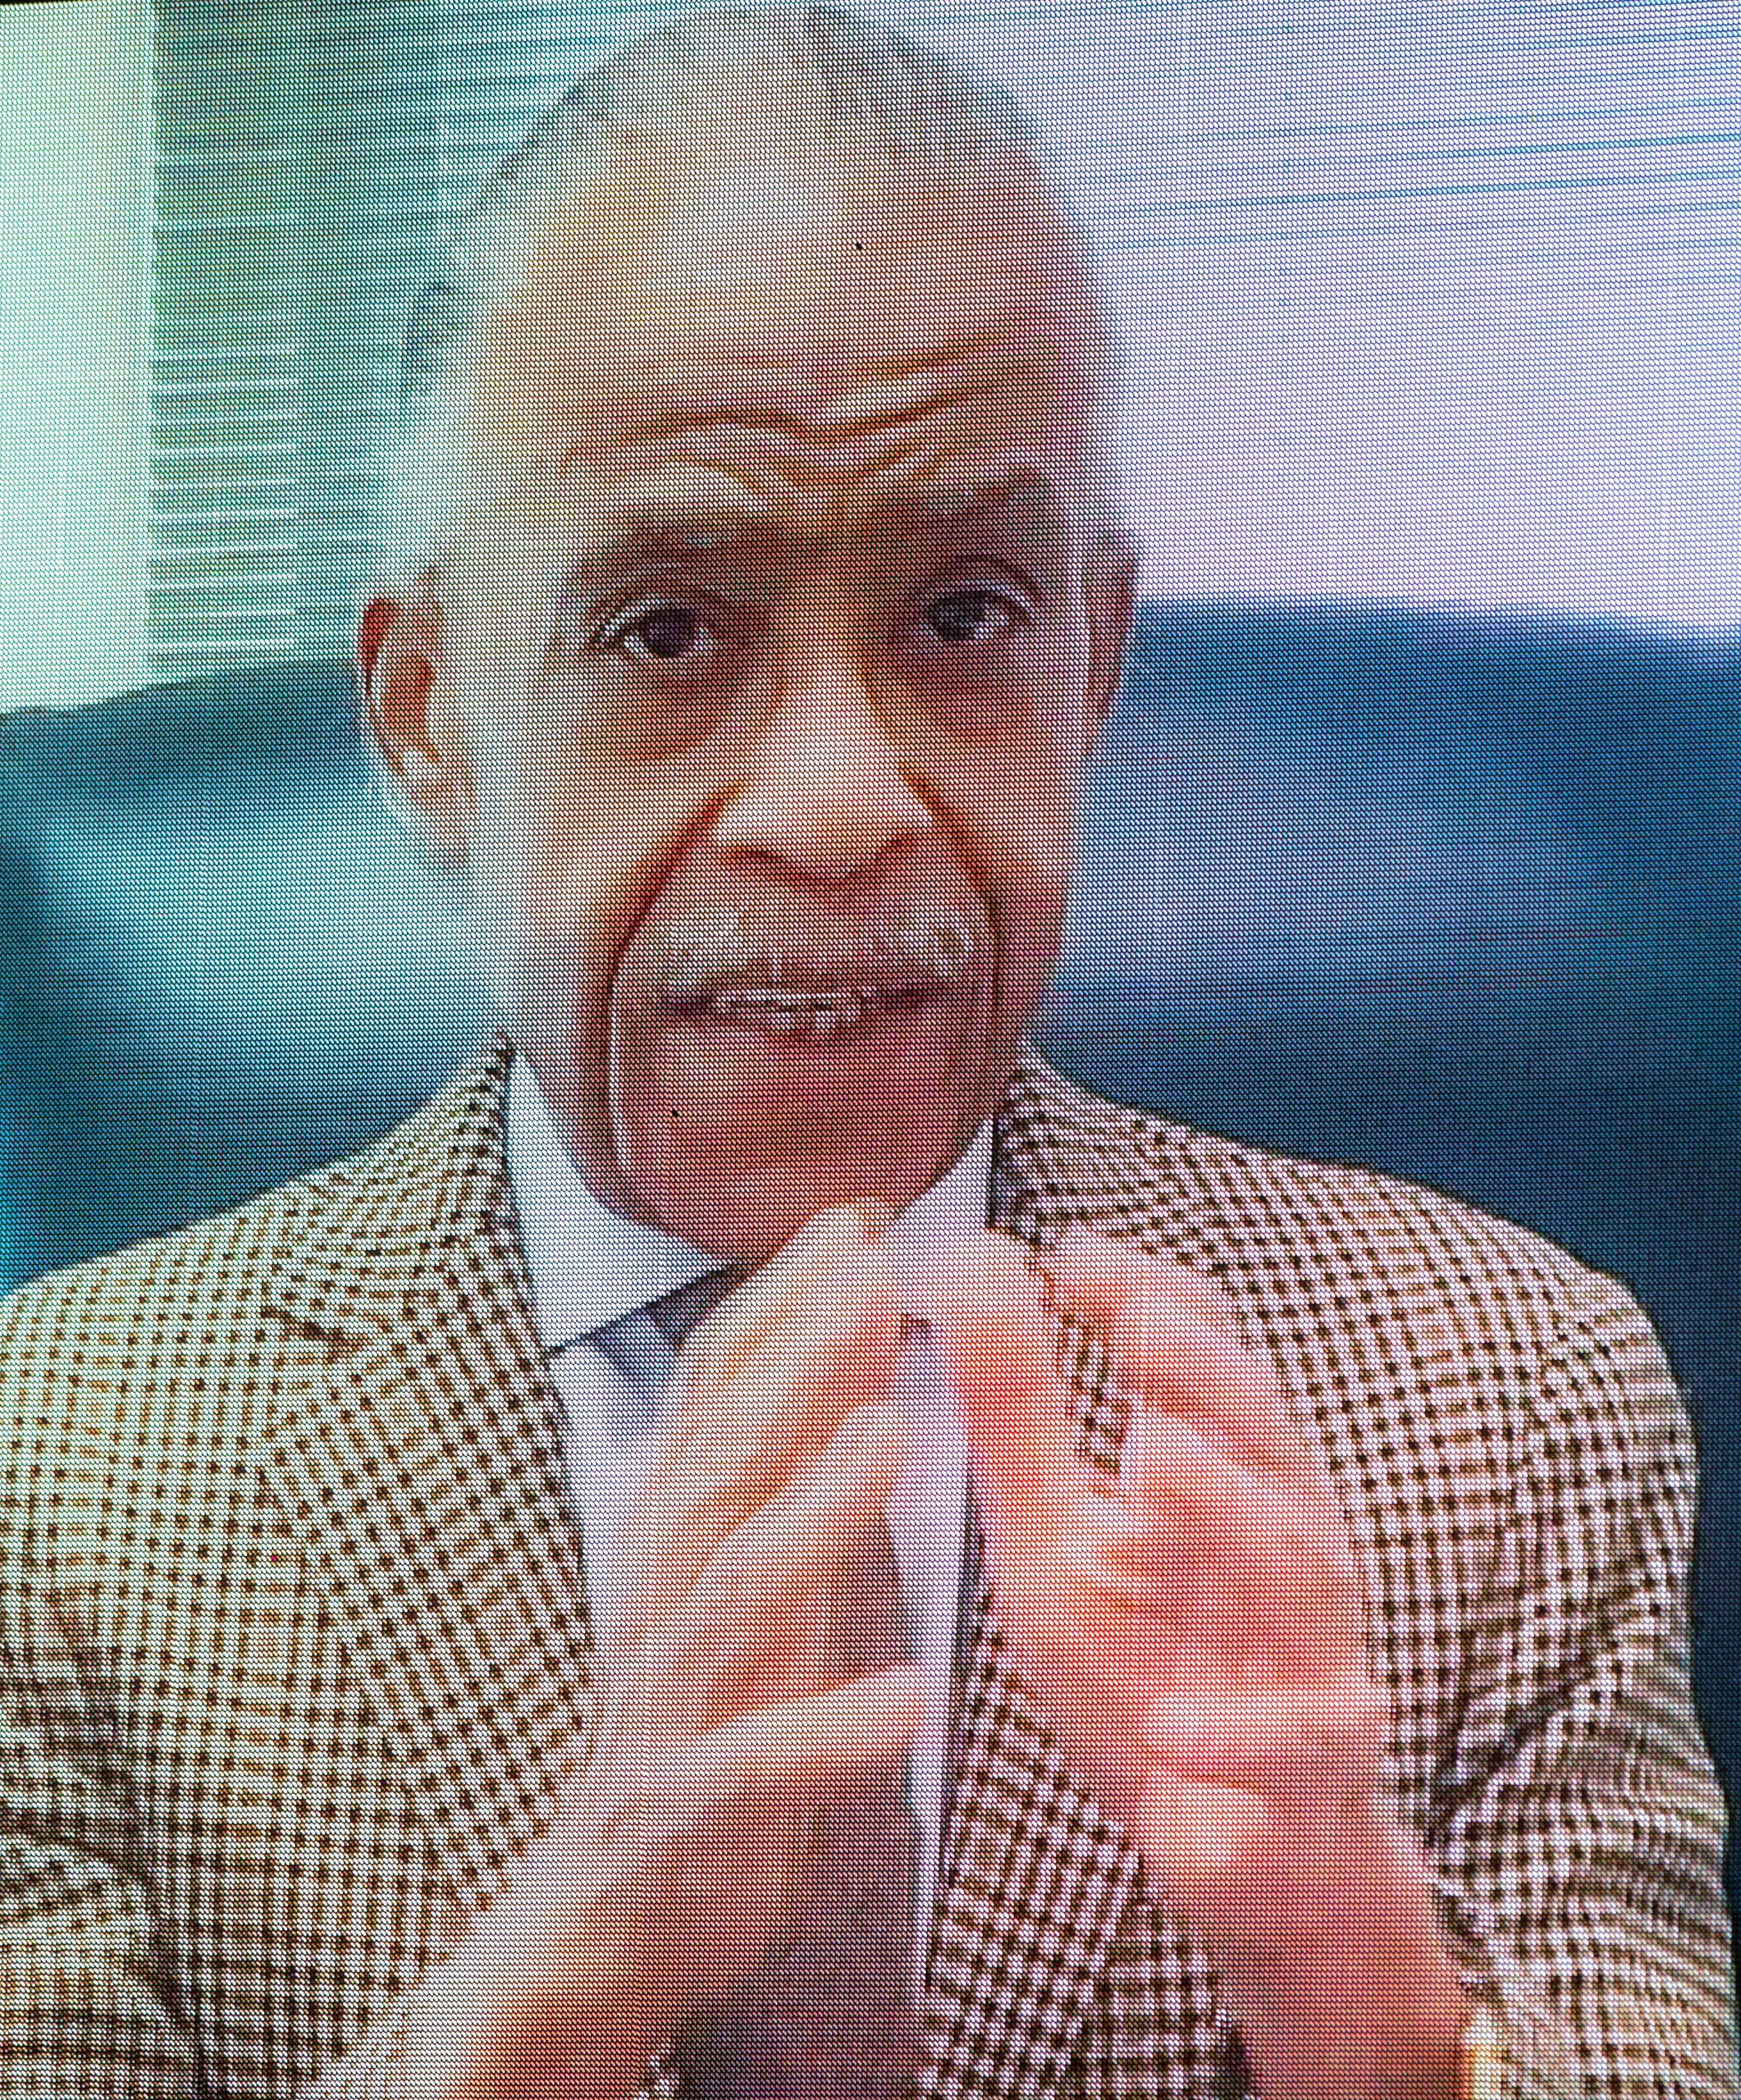 The Rev. Al Sharpton speaks via video during the funeral for Danny Ray, the famous emcee and cape man for James Brown, Saturday morning Feb. 13, 2021, at the James Brown Arena in Augusta, Ga.